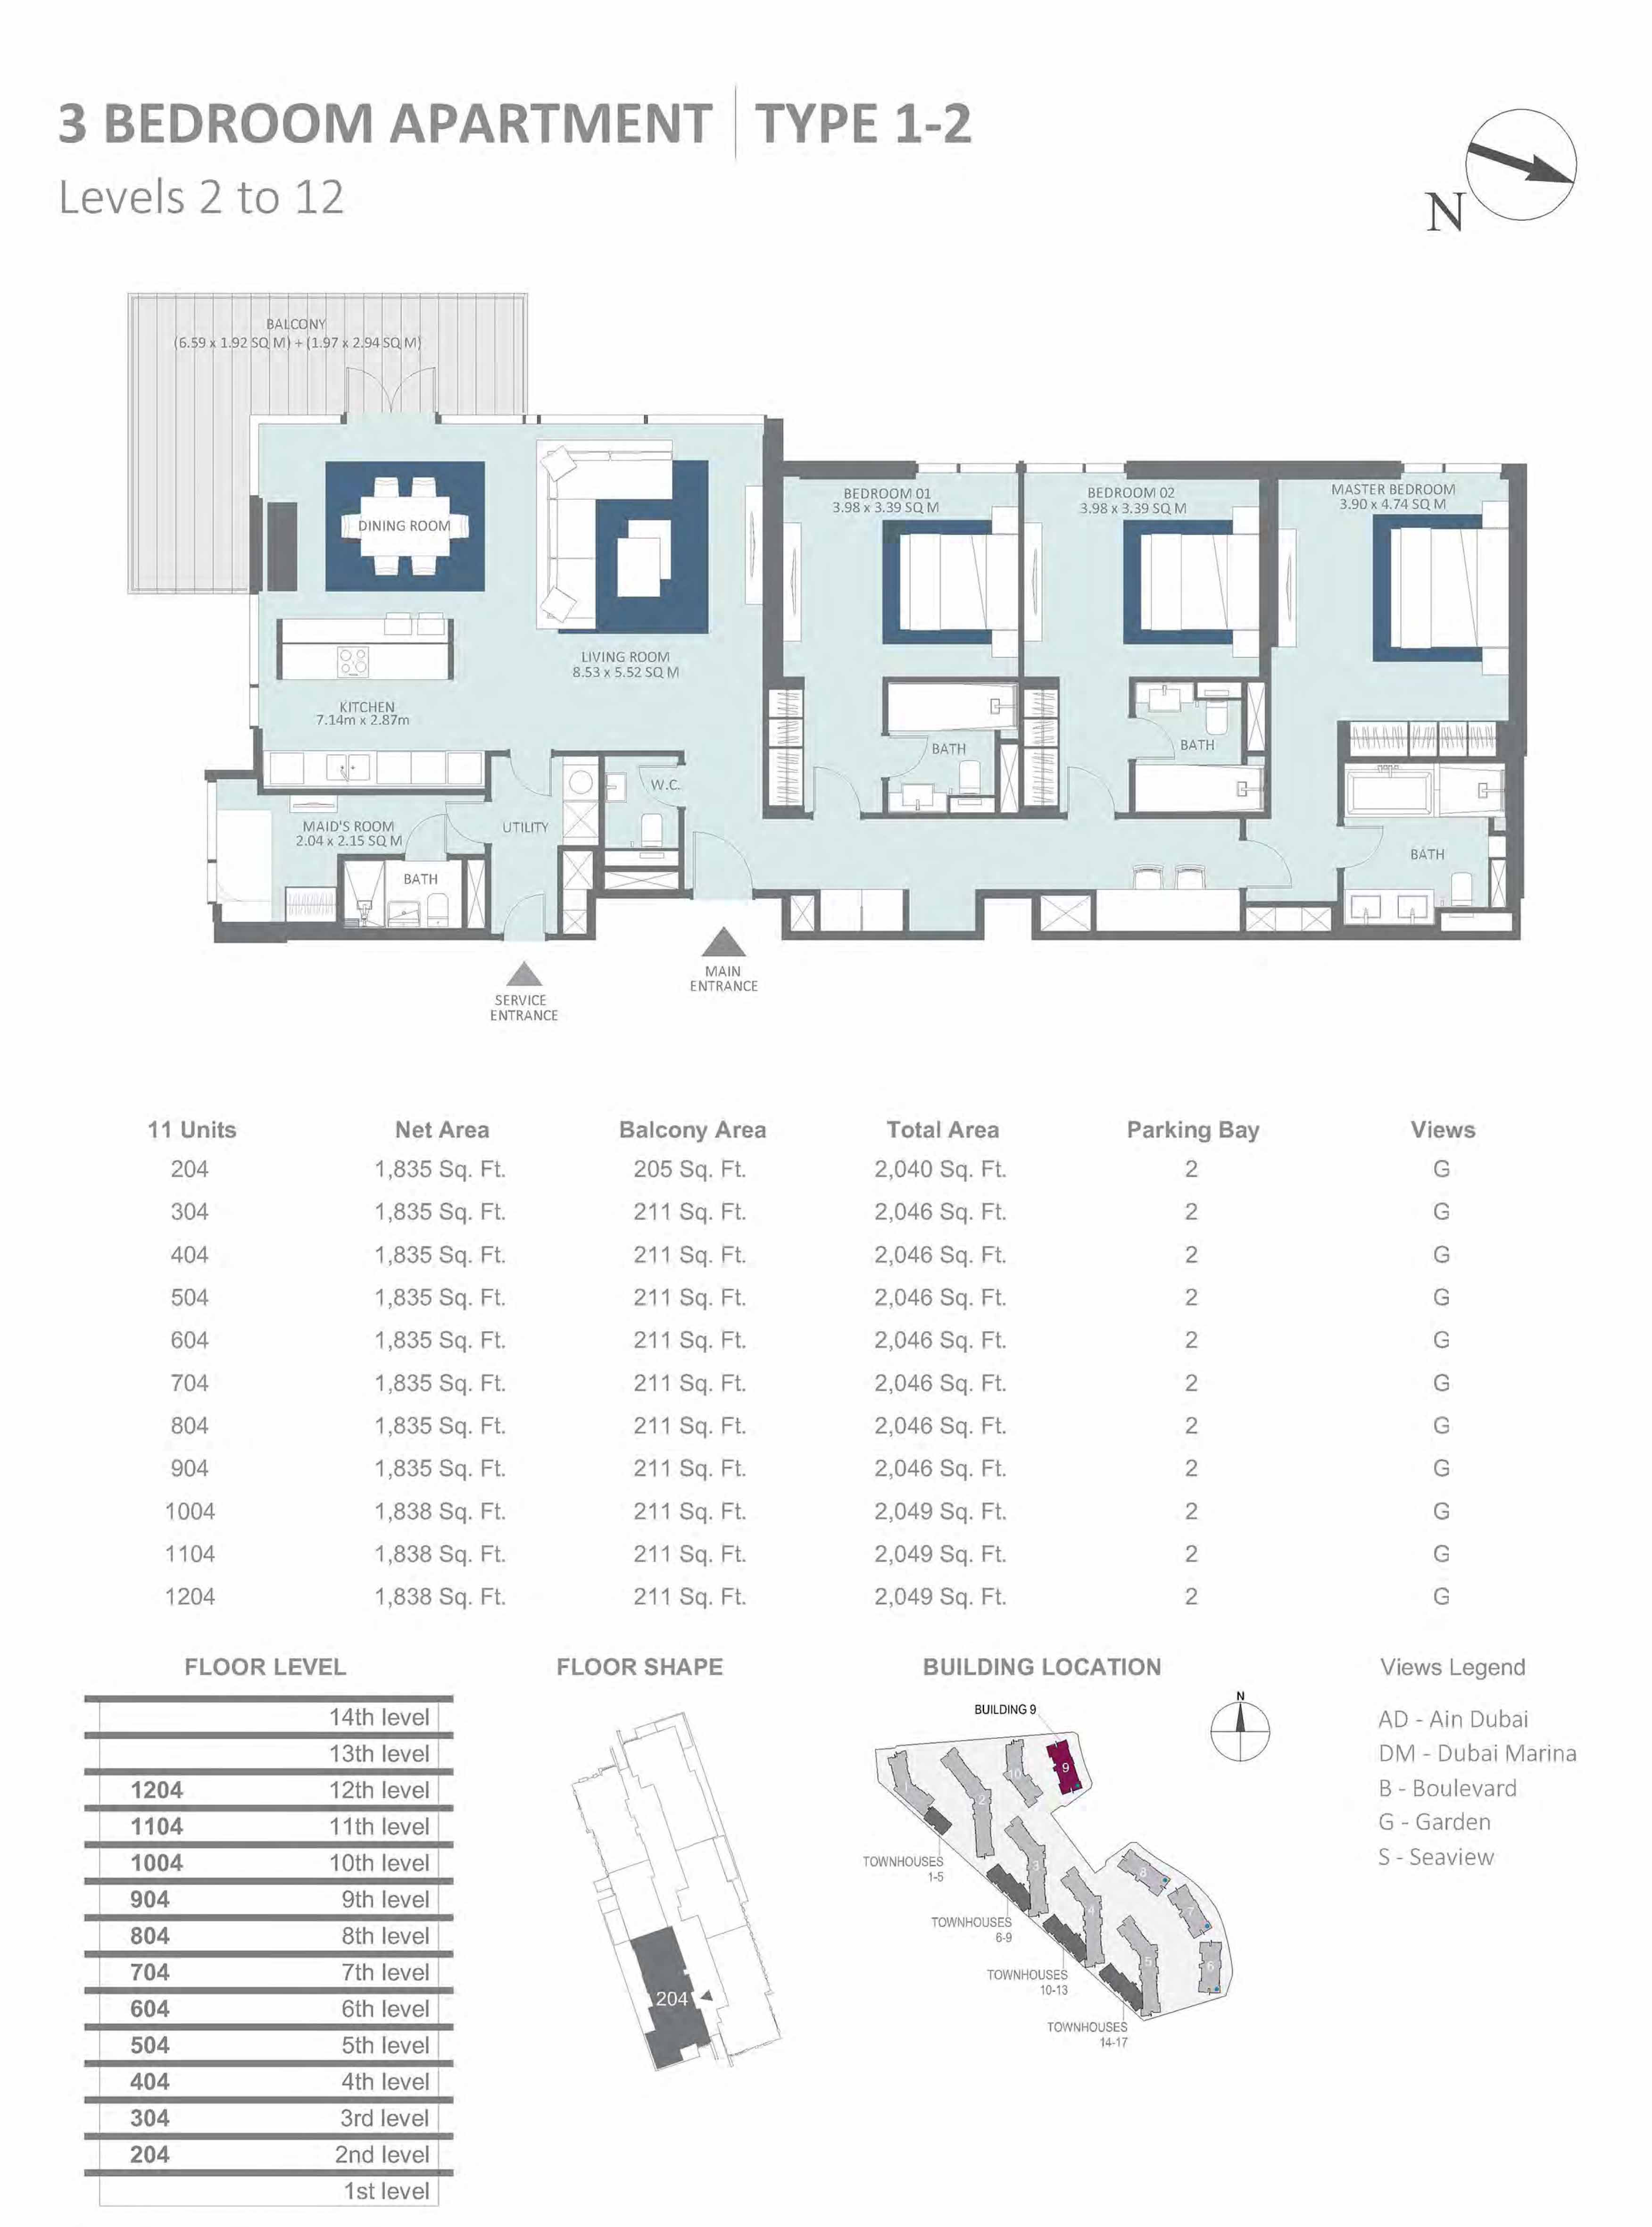 Building 9 - 3 Bedroom Type 1-2, Level 2-to-12 Size 2040 to 2049  sq. ft.